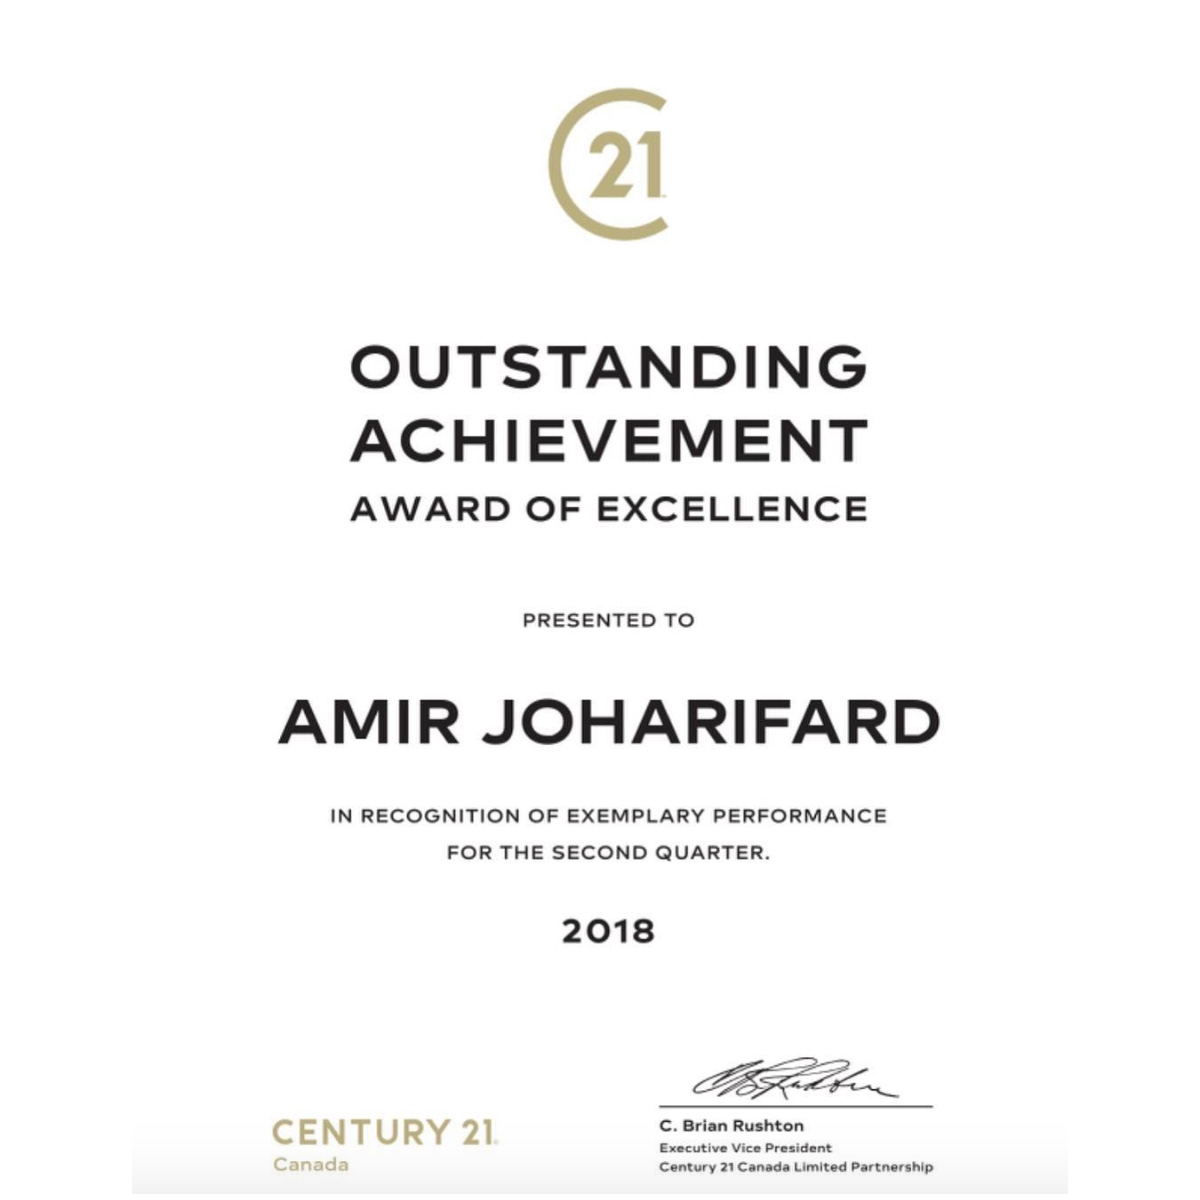 Out standing achievement 2nd quarter 2018